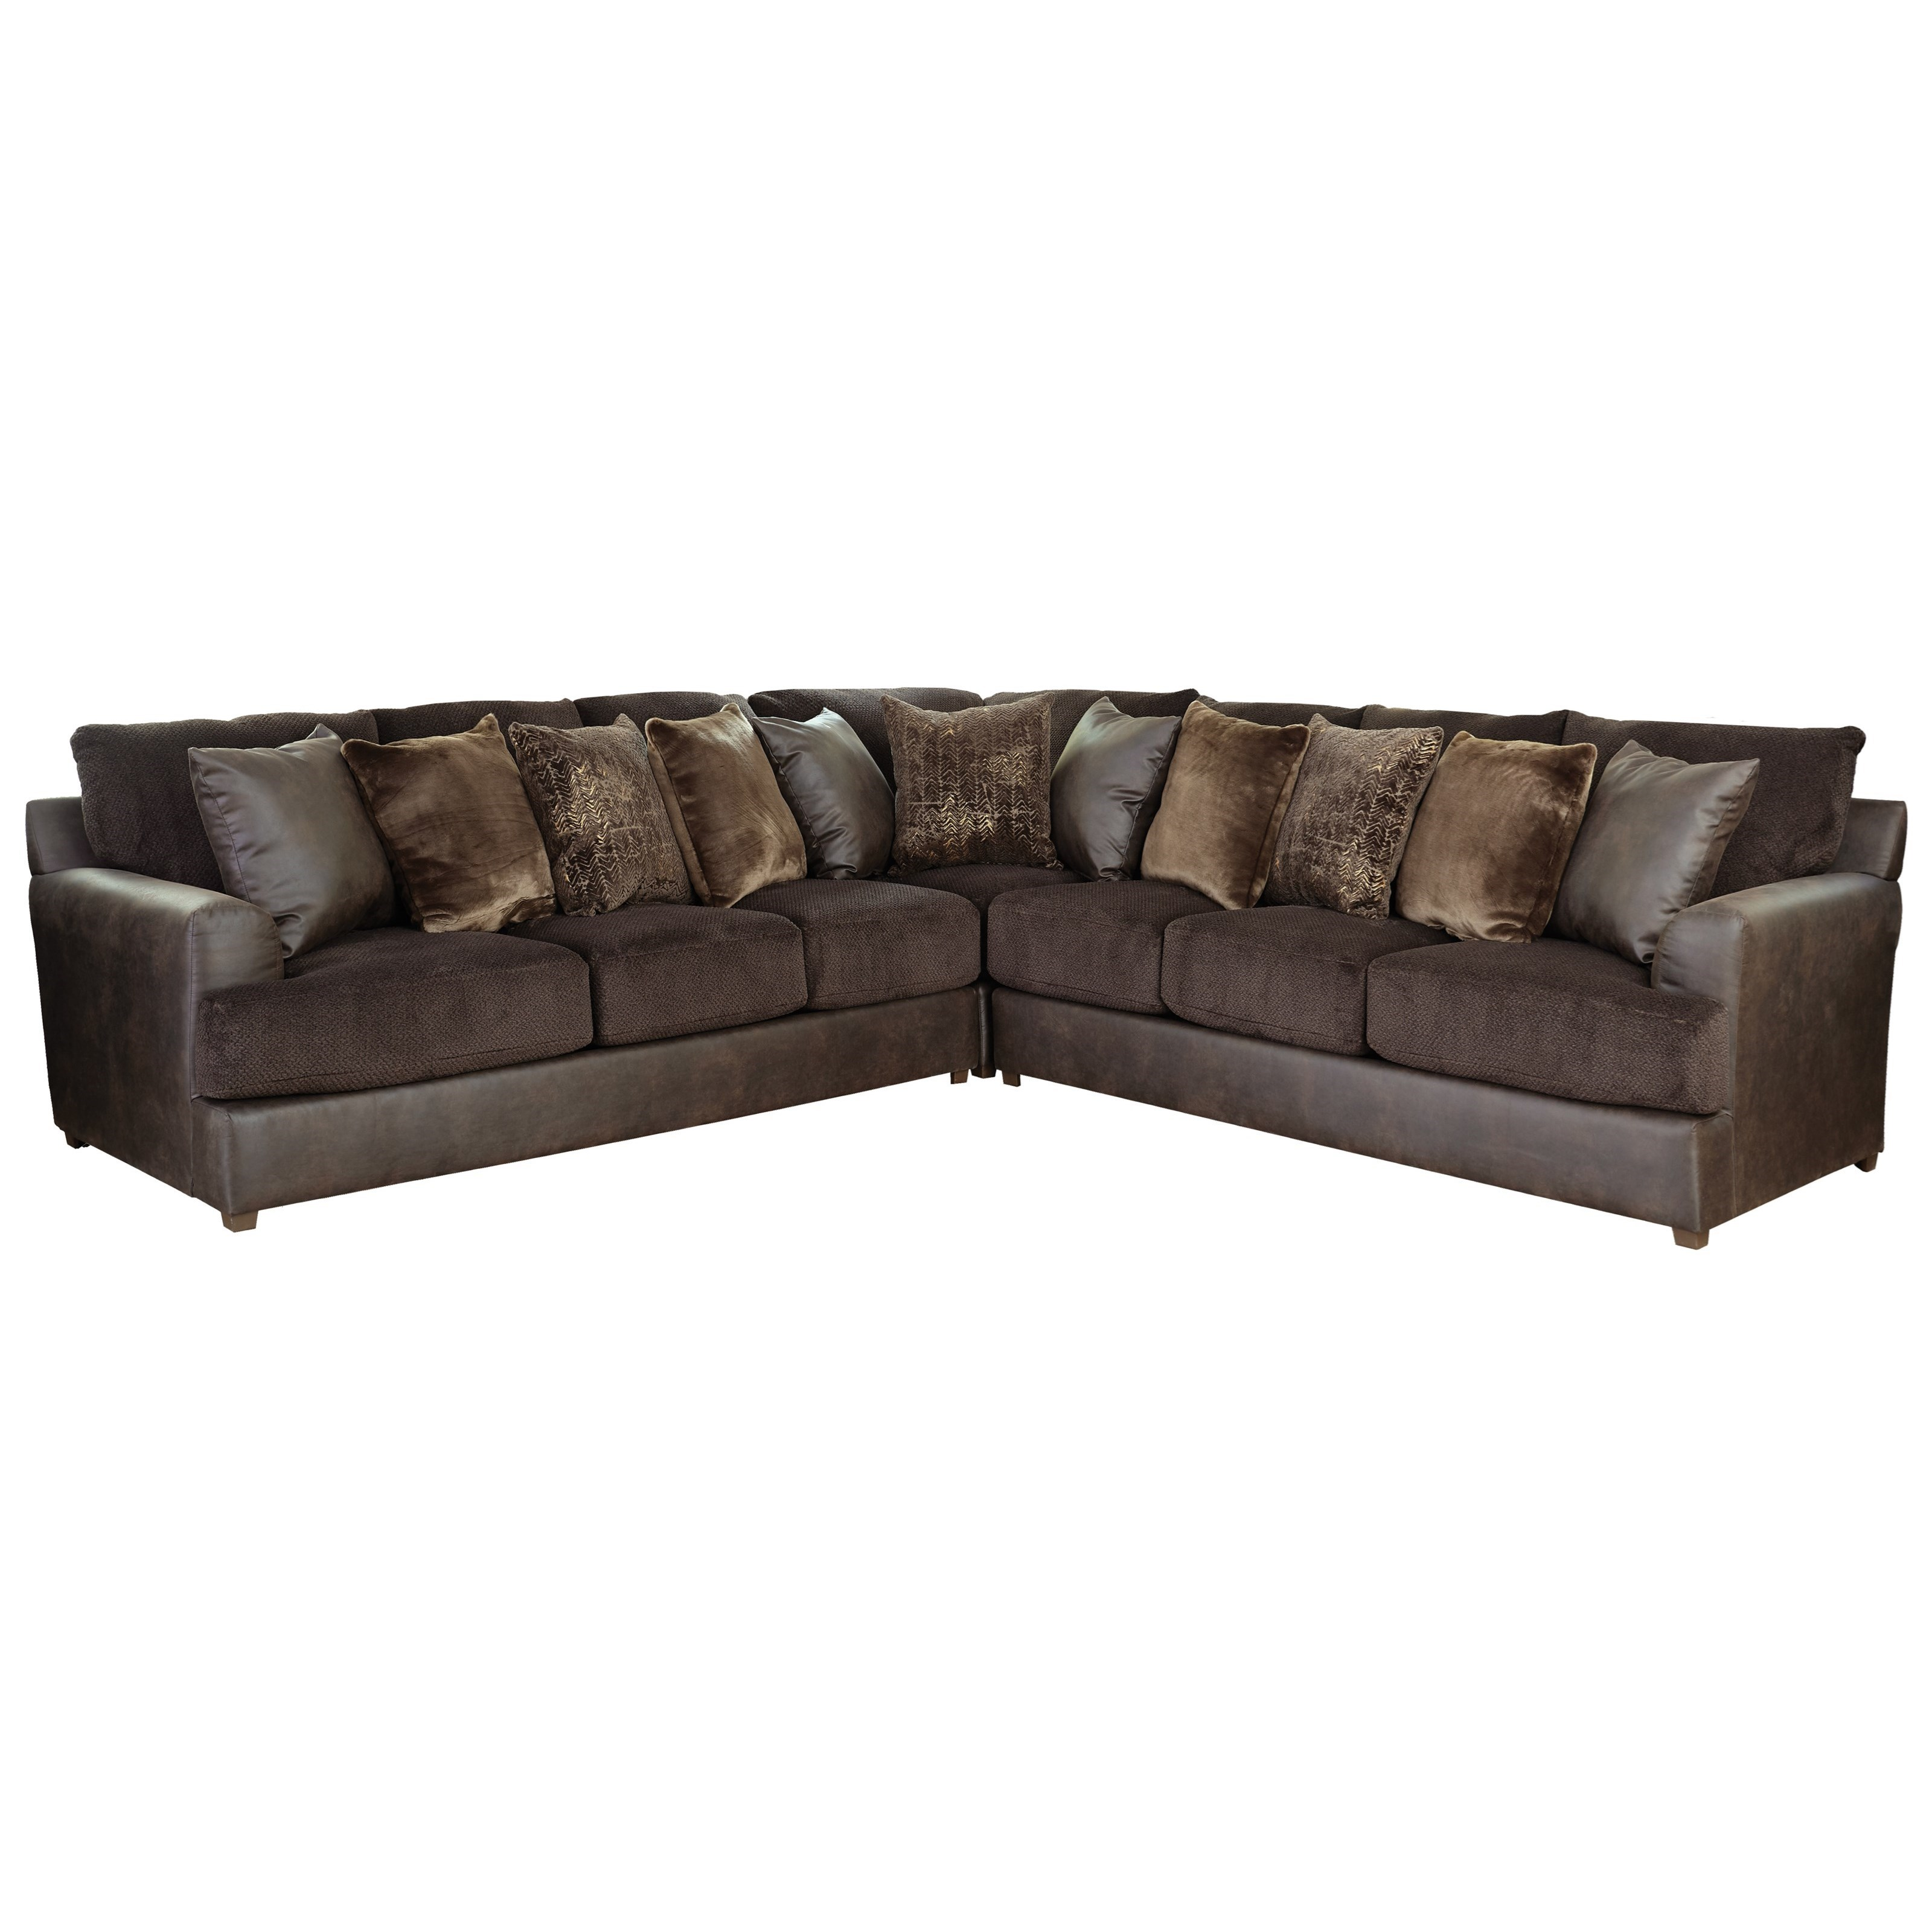 jackson furniture sectional sofas antique sofa style identification cortland 3 piece with track